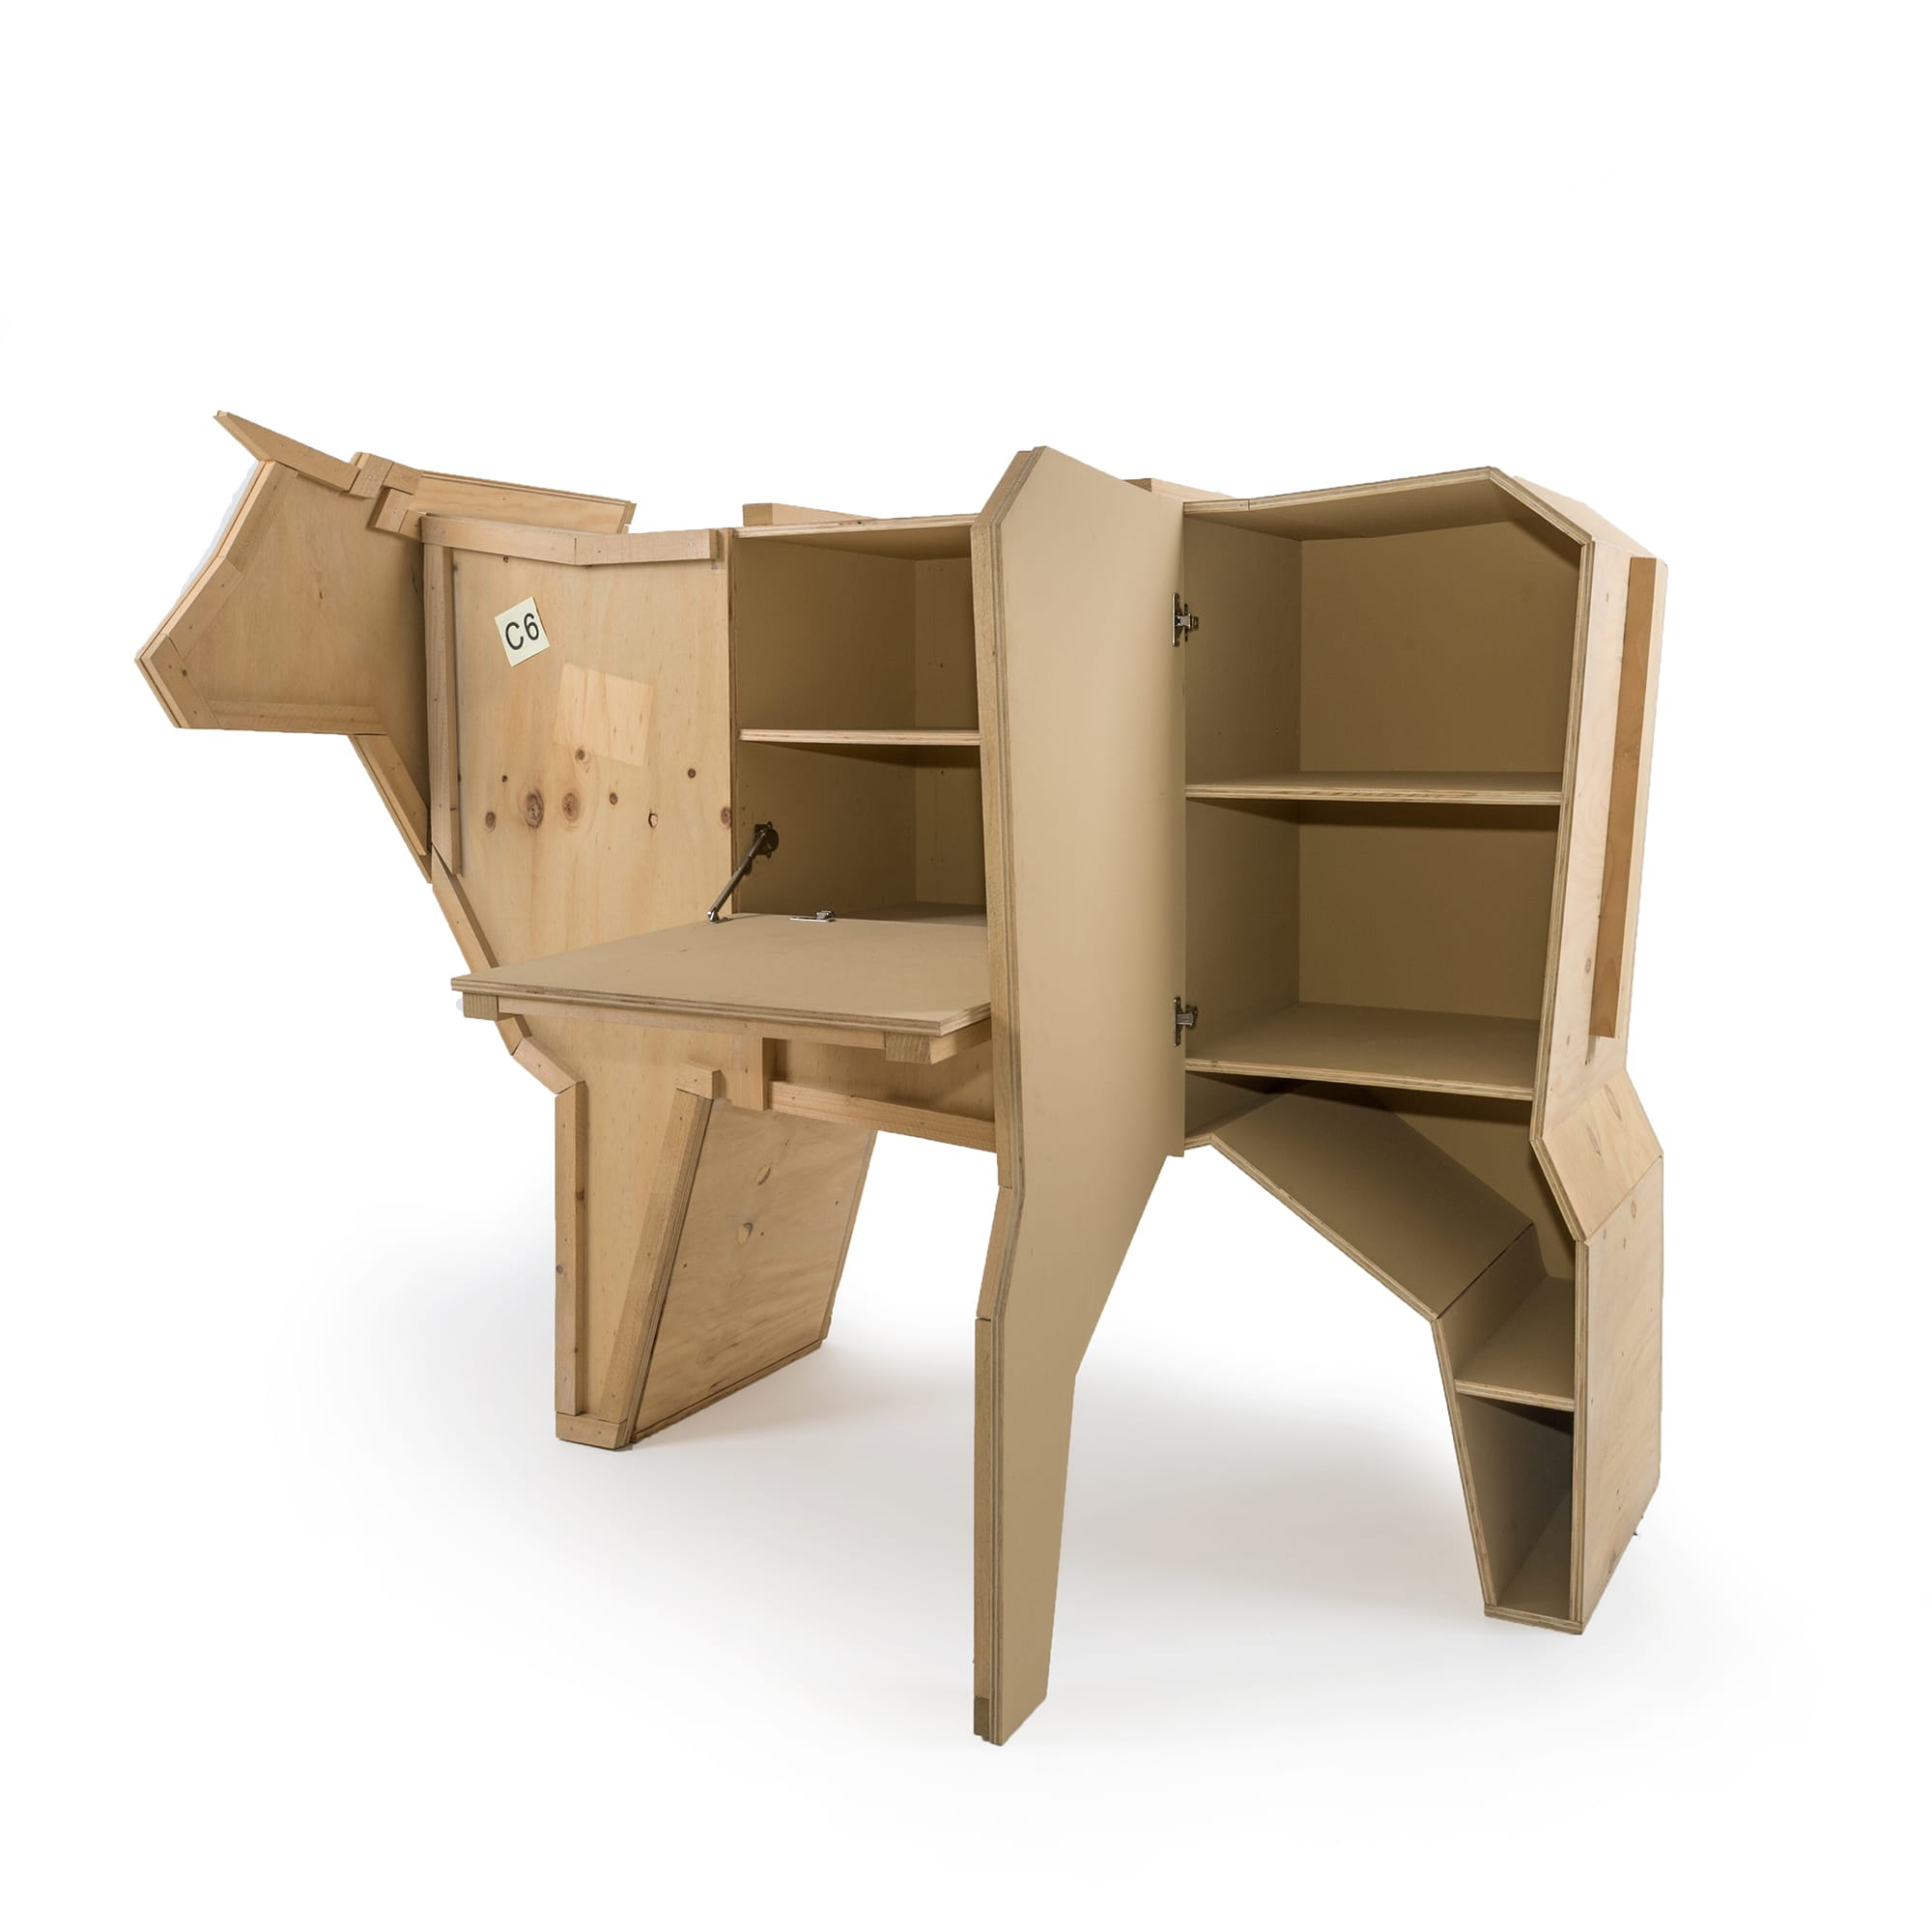 Wooden Furniture Seletti Sending Cow Open Racurs